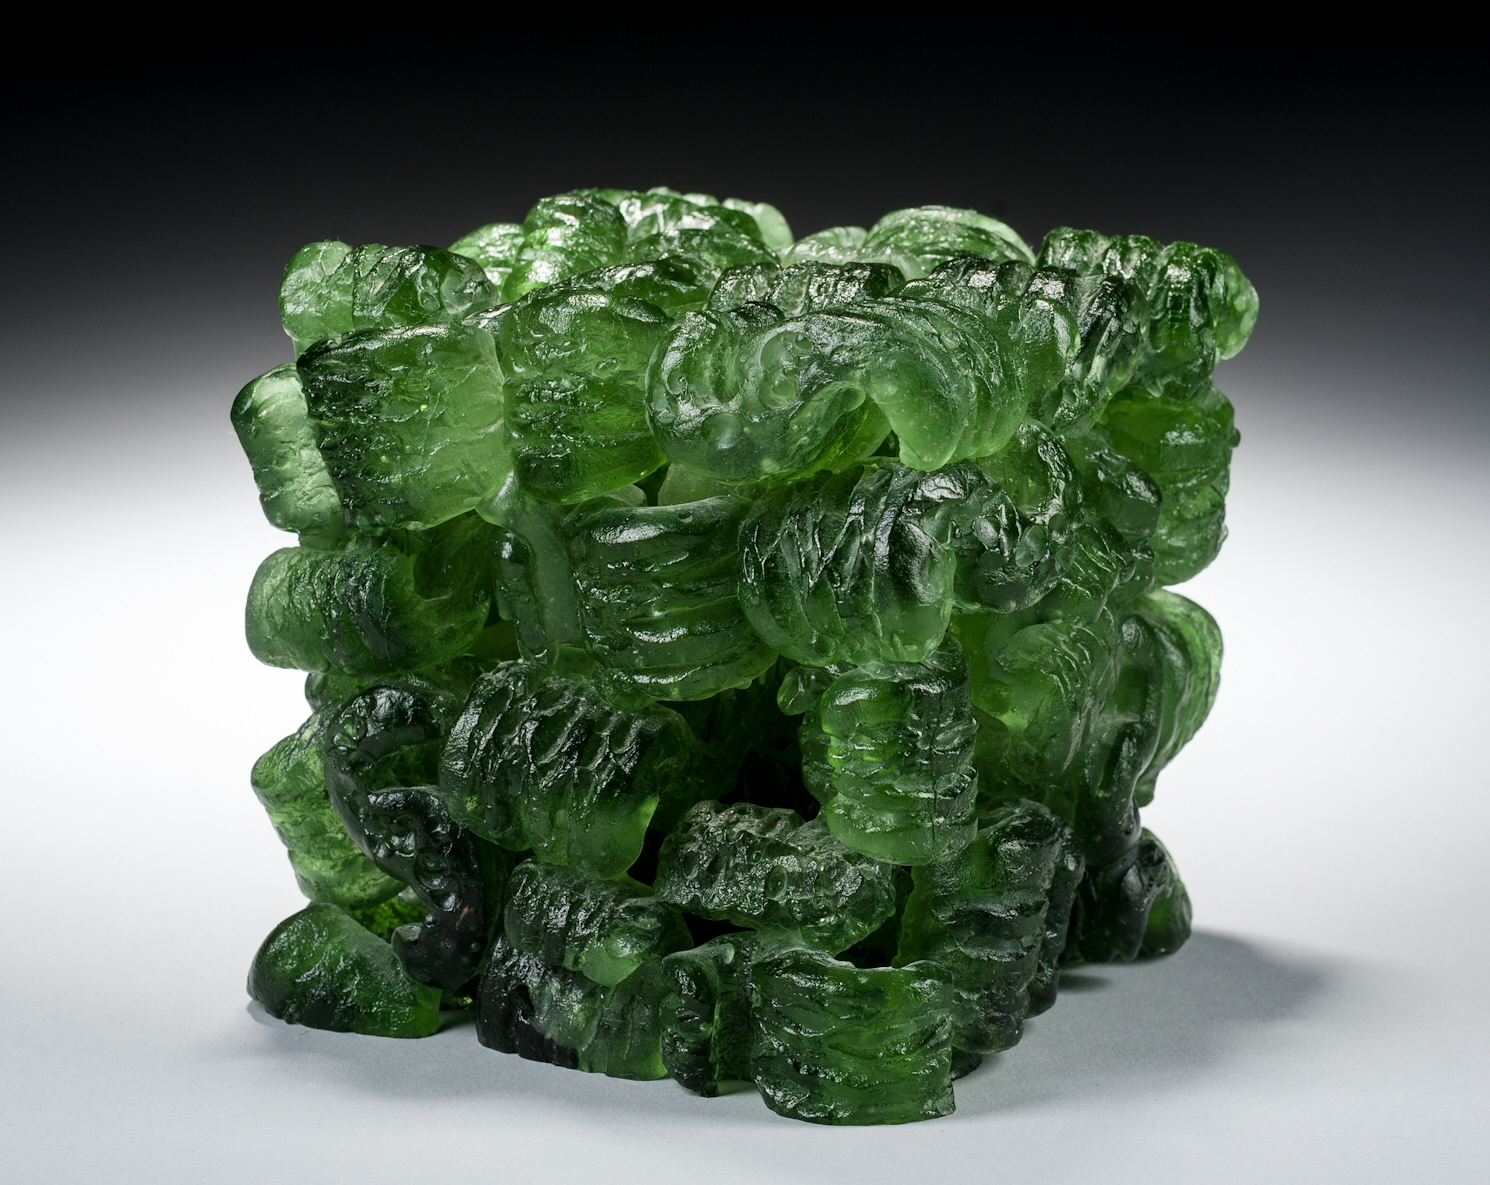 Washington glass school erwin timmers featured in aac for Recycled glass art